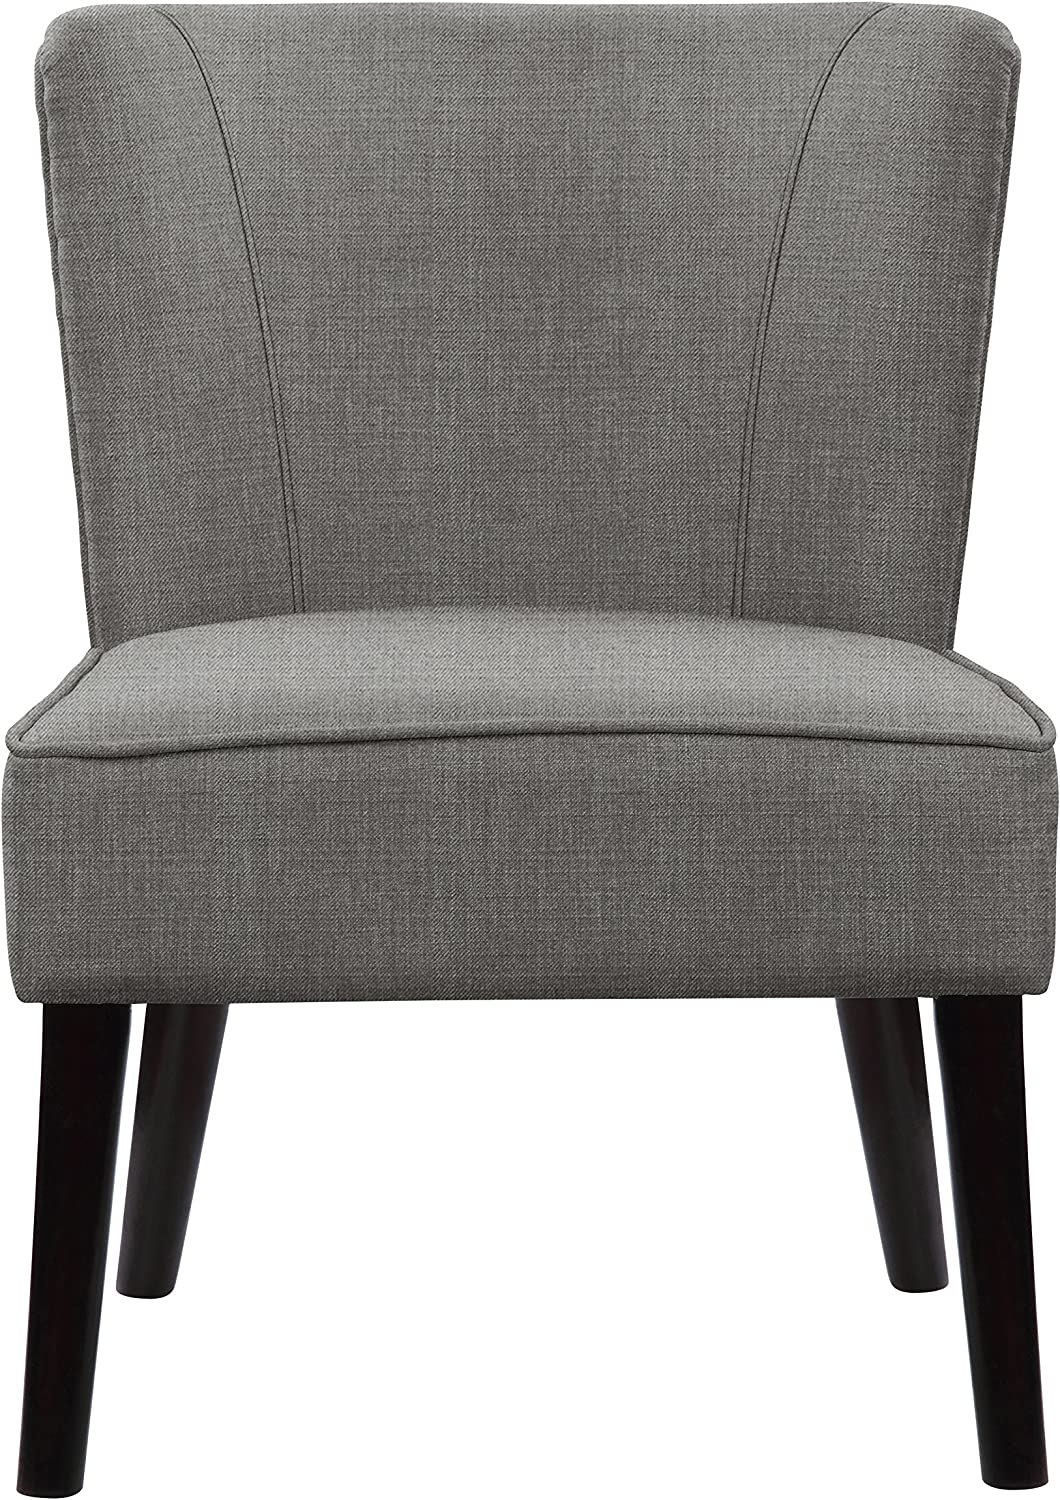 Patricia Accent Chair with Sager Fabric   456